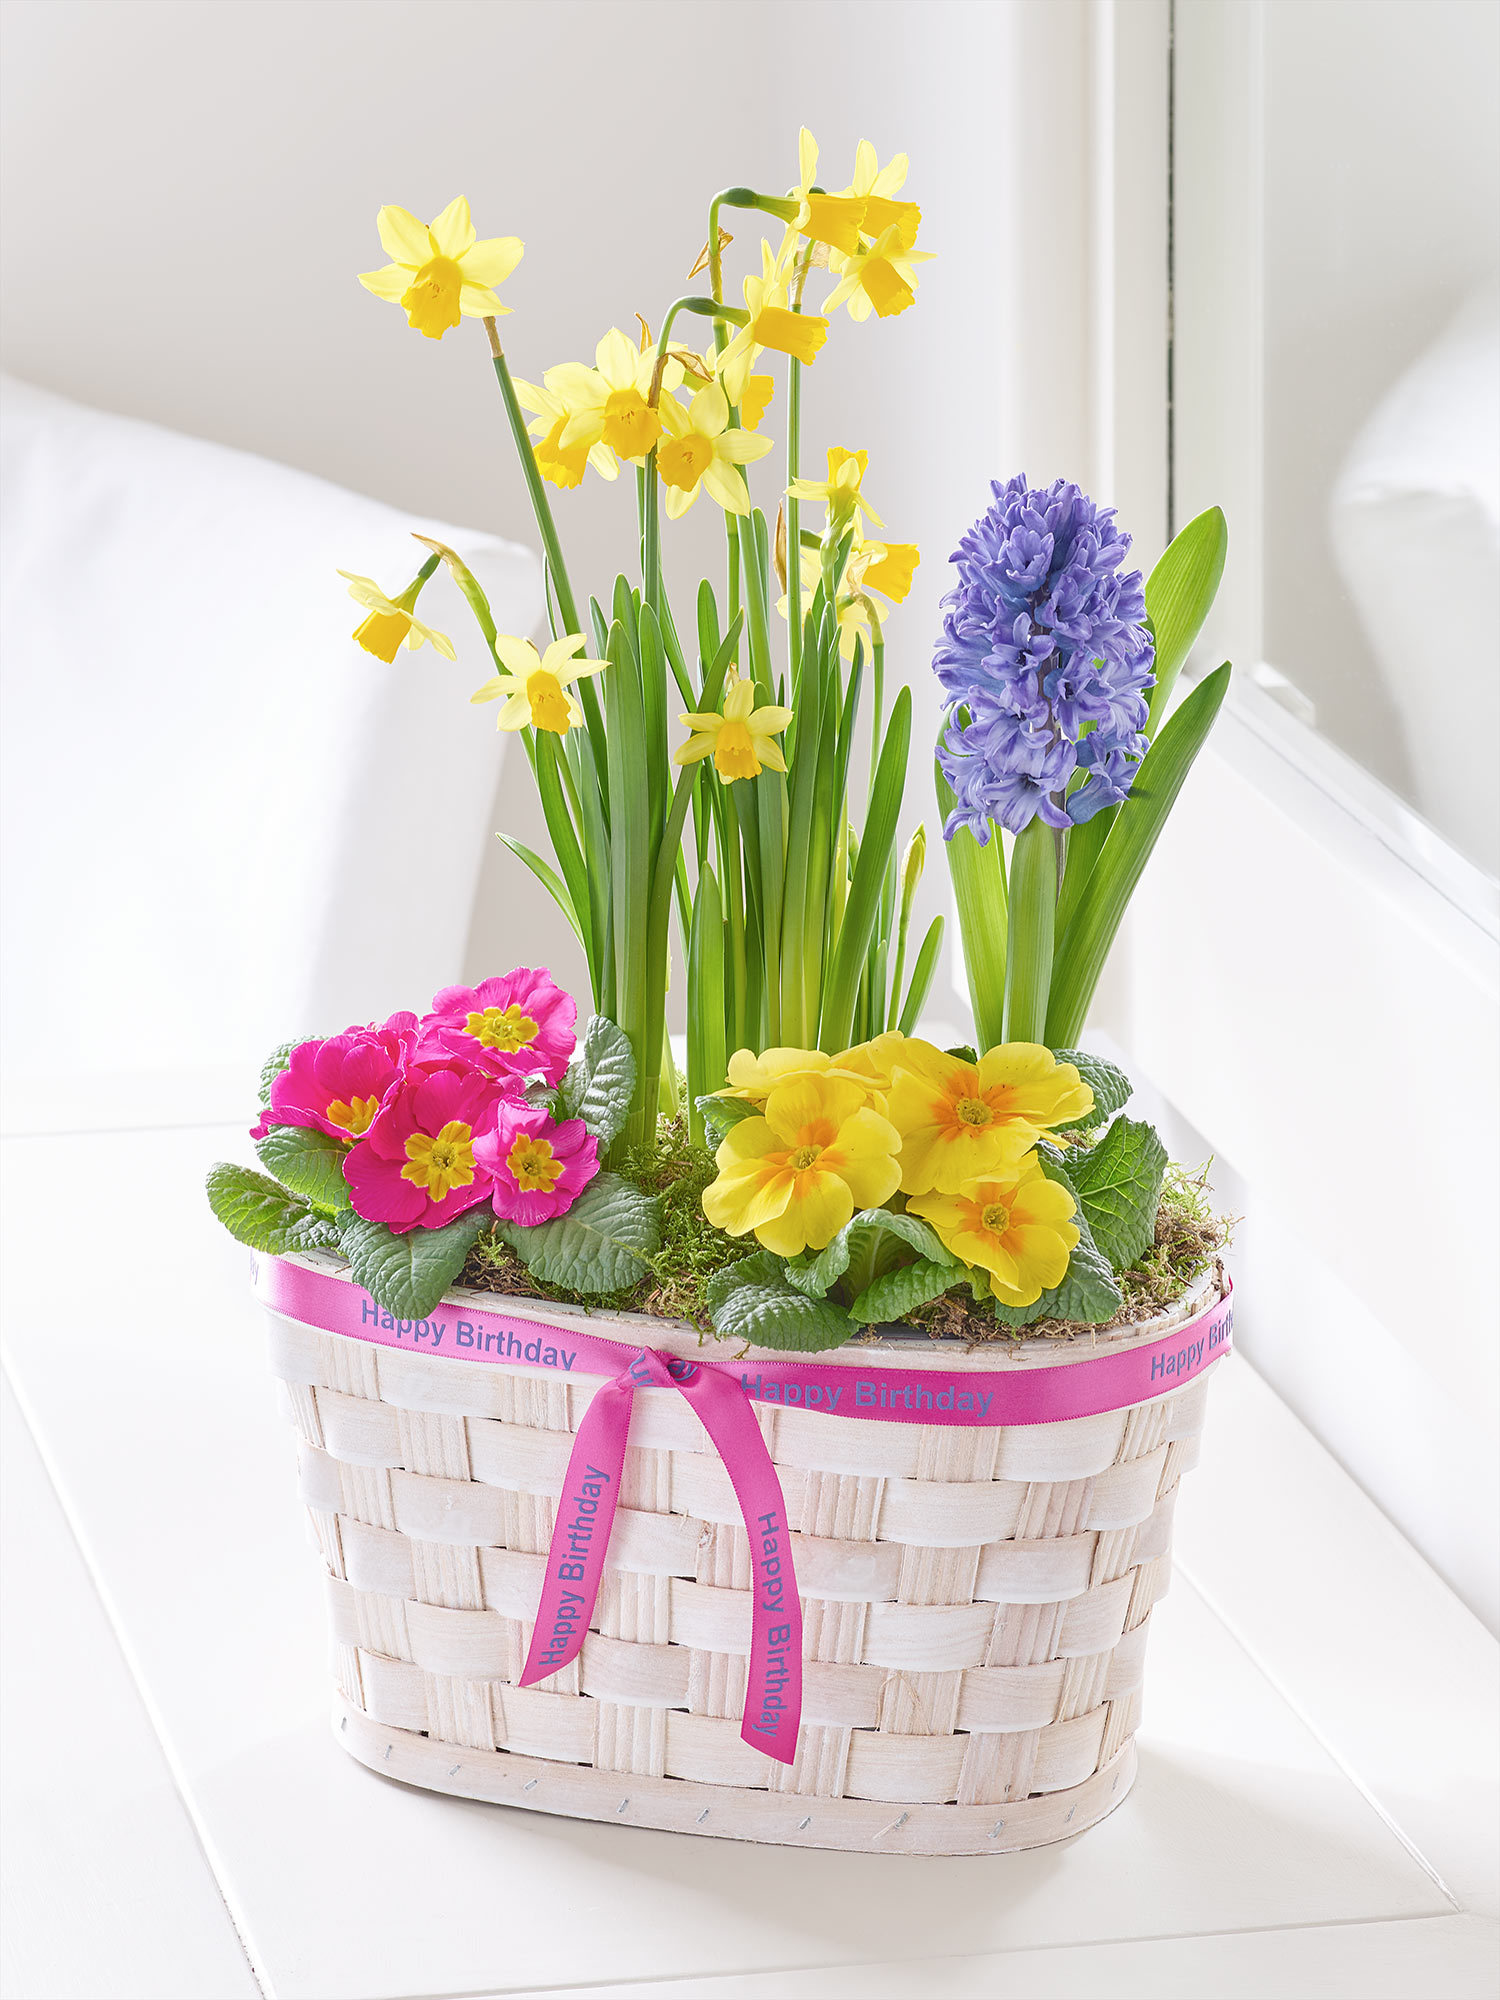 Happy Birthday Spring Planted Basket Sweeneys Florist